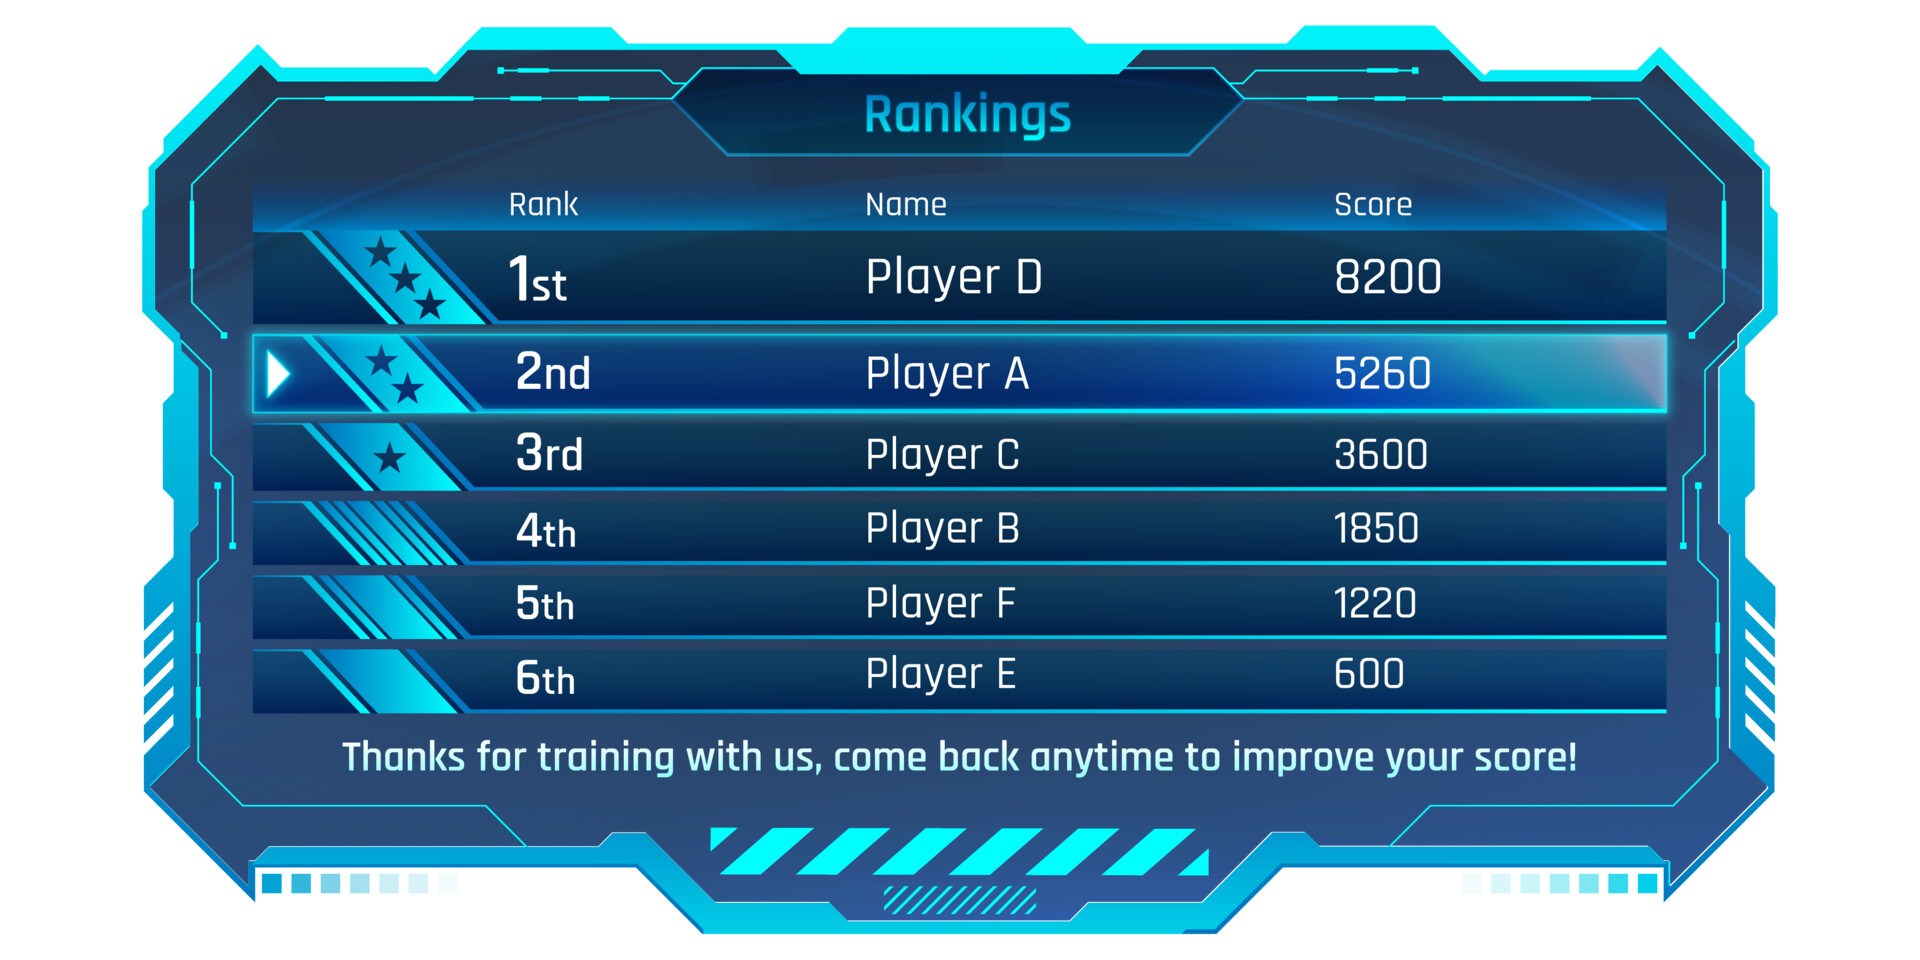 Leaderboard screen designed in Illustrator and implemented in Unity canvas, displayed at the end of the game.